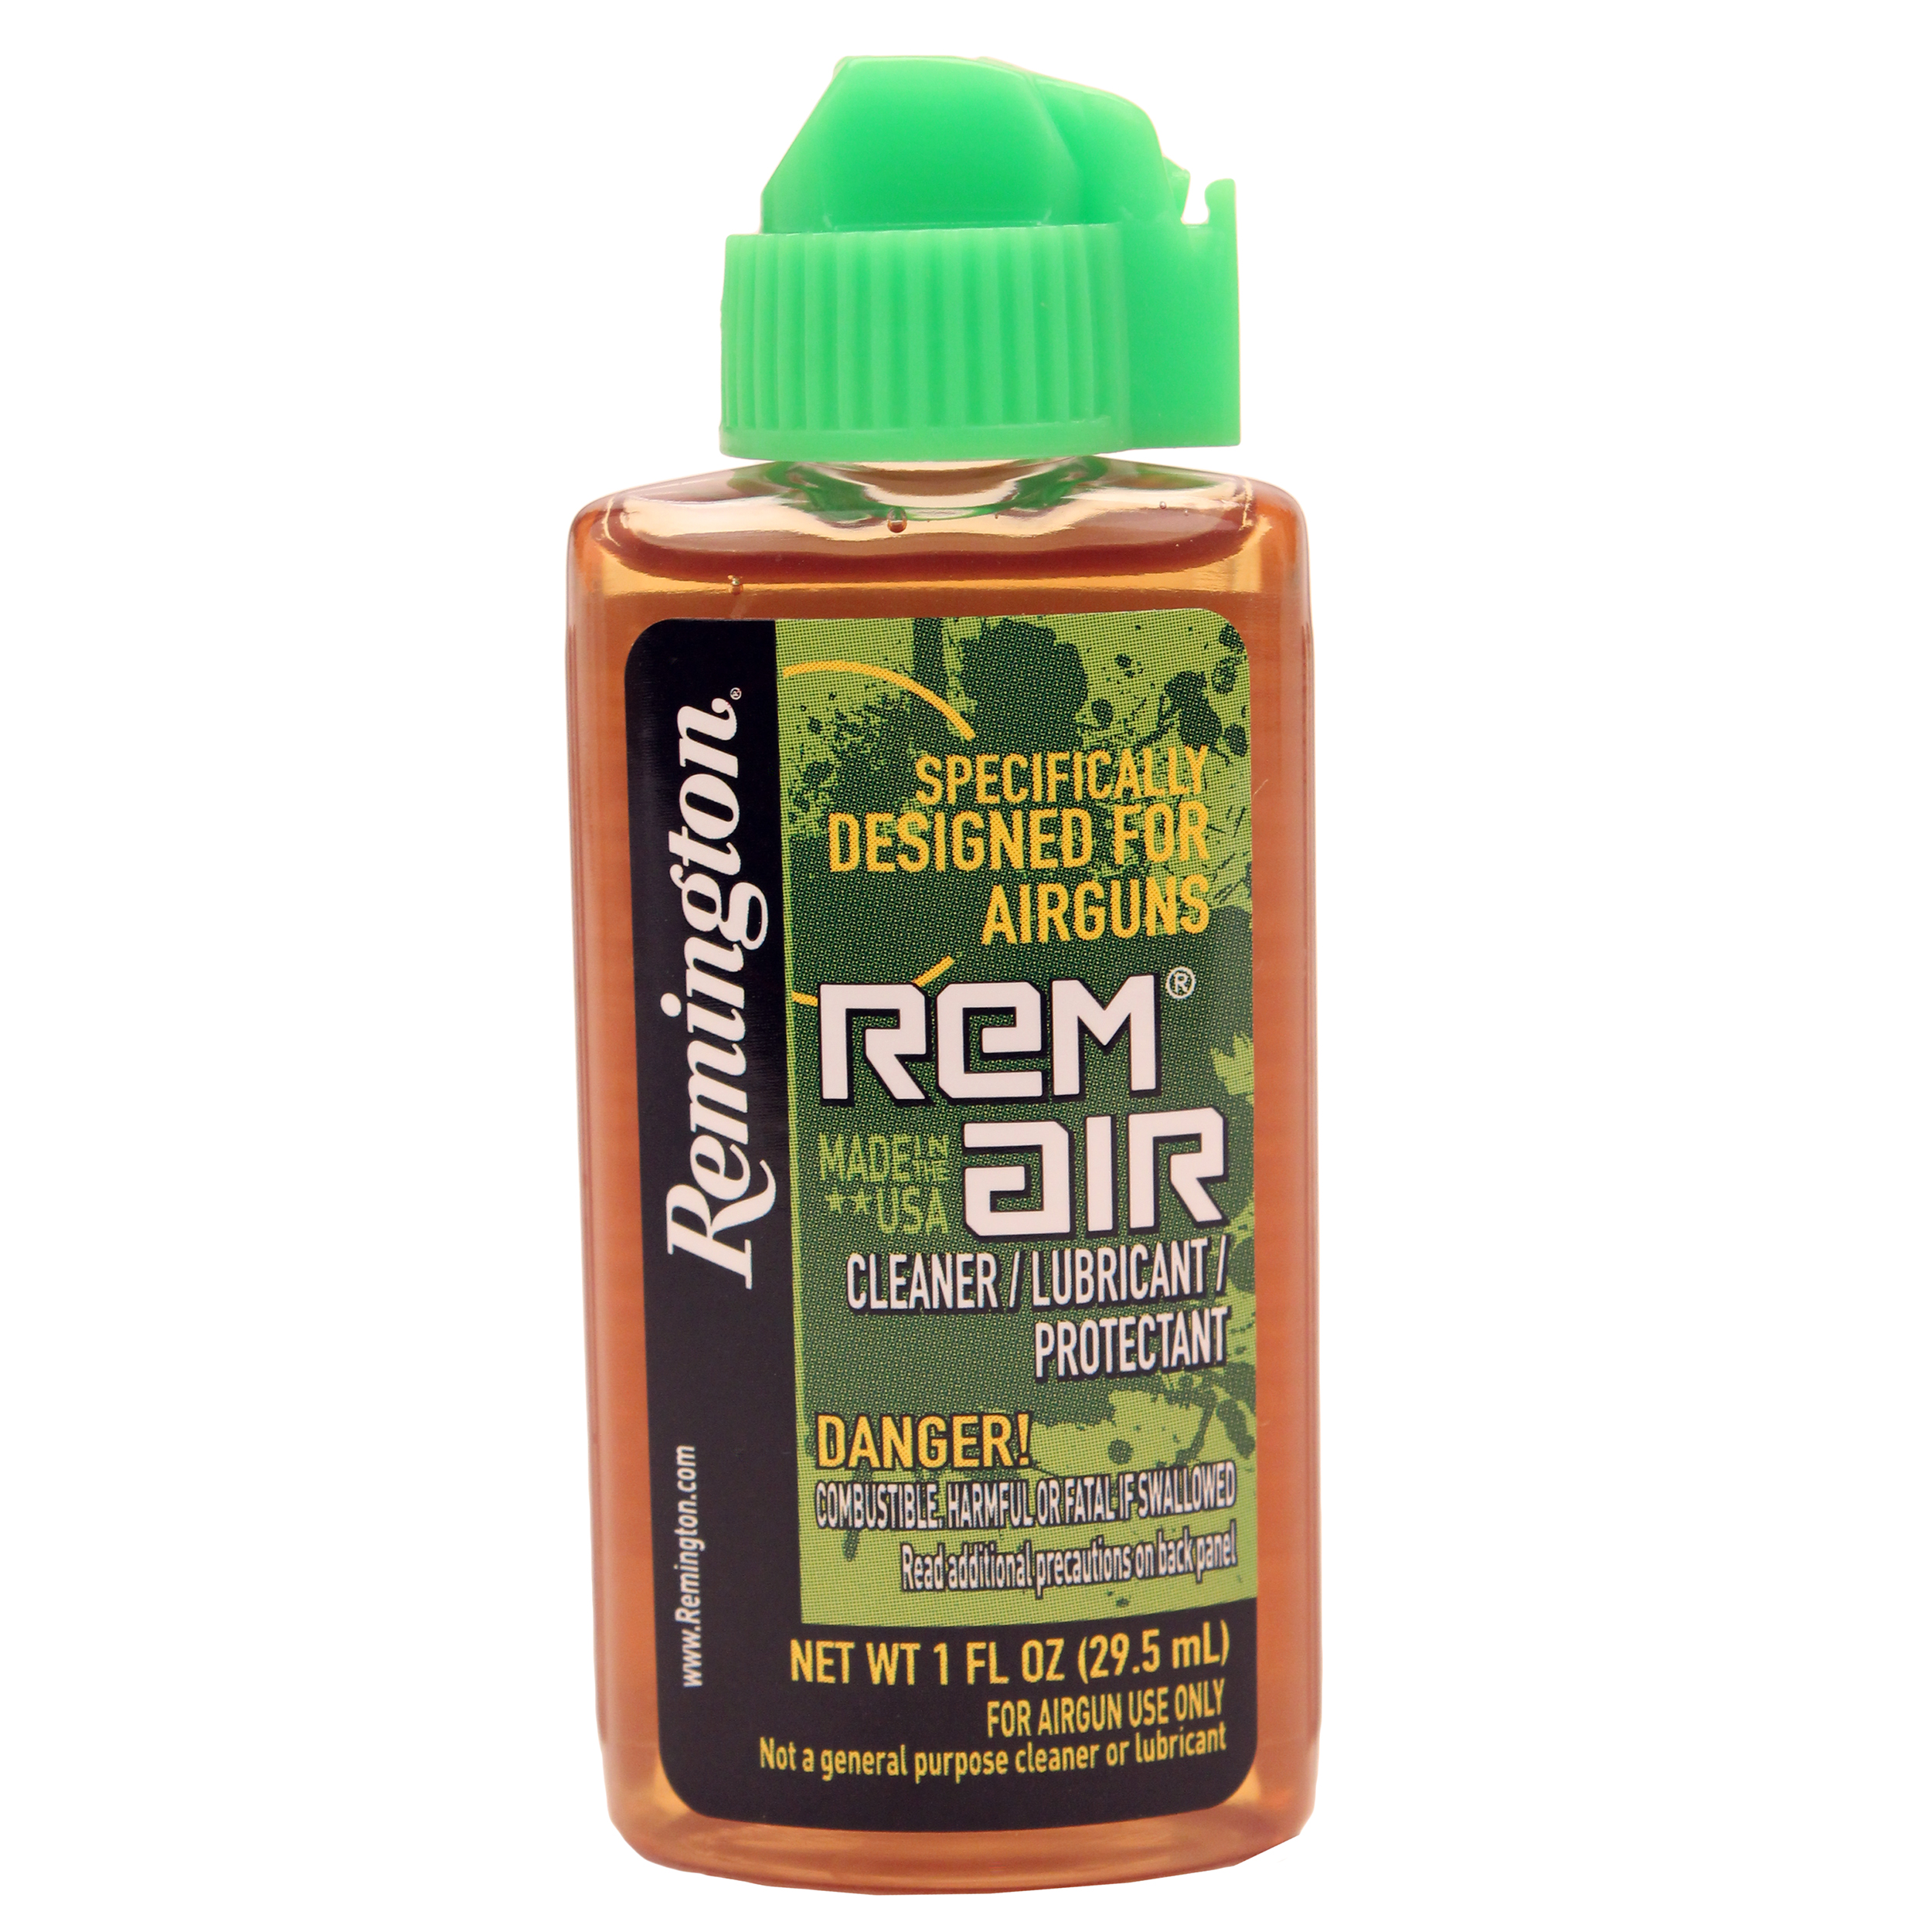 Rem? Air Cleaner & Lubricant,1 oz bottle